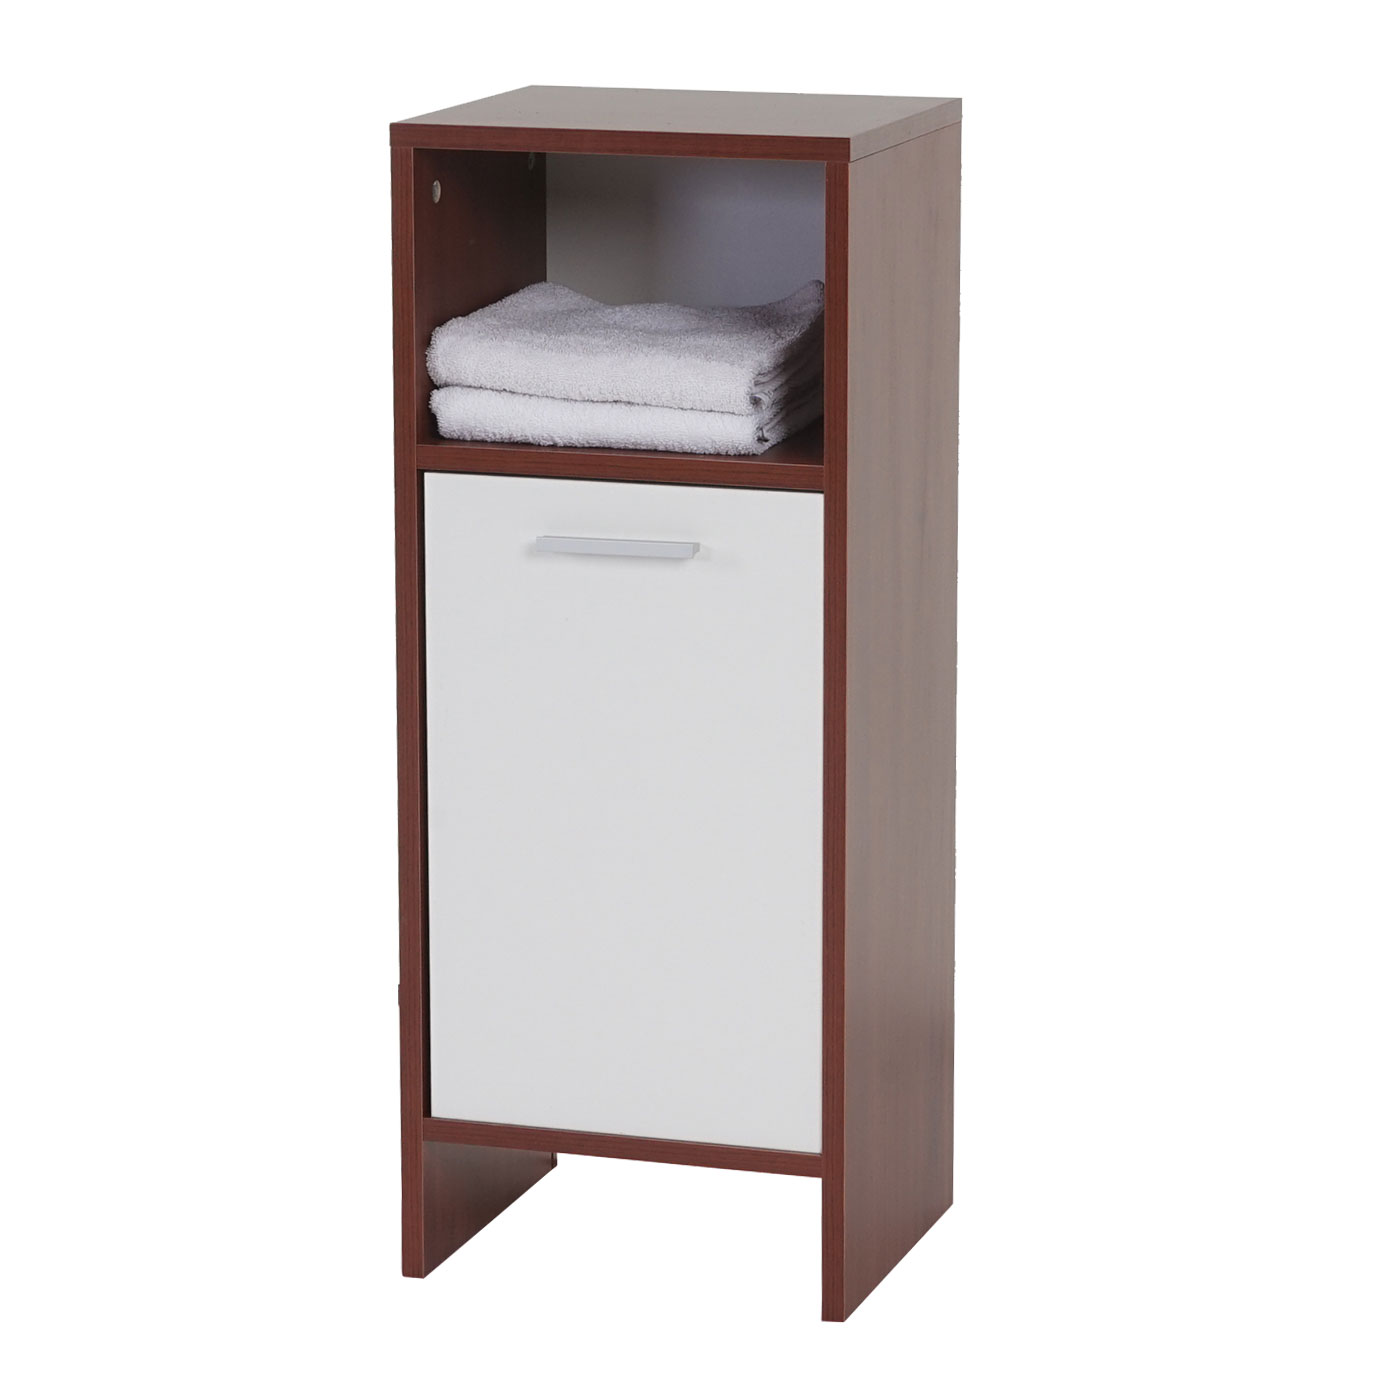 kommode arezzo badezimmerkommode badschrank 82x32x28cm braun t ren wei. Black Bedroom Furniture Sets. Home Design Ideas